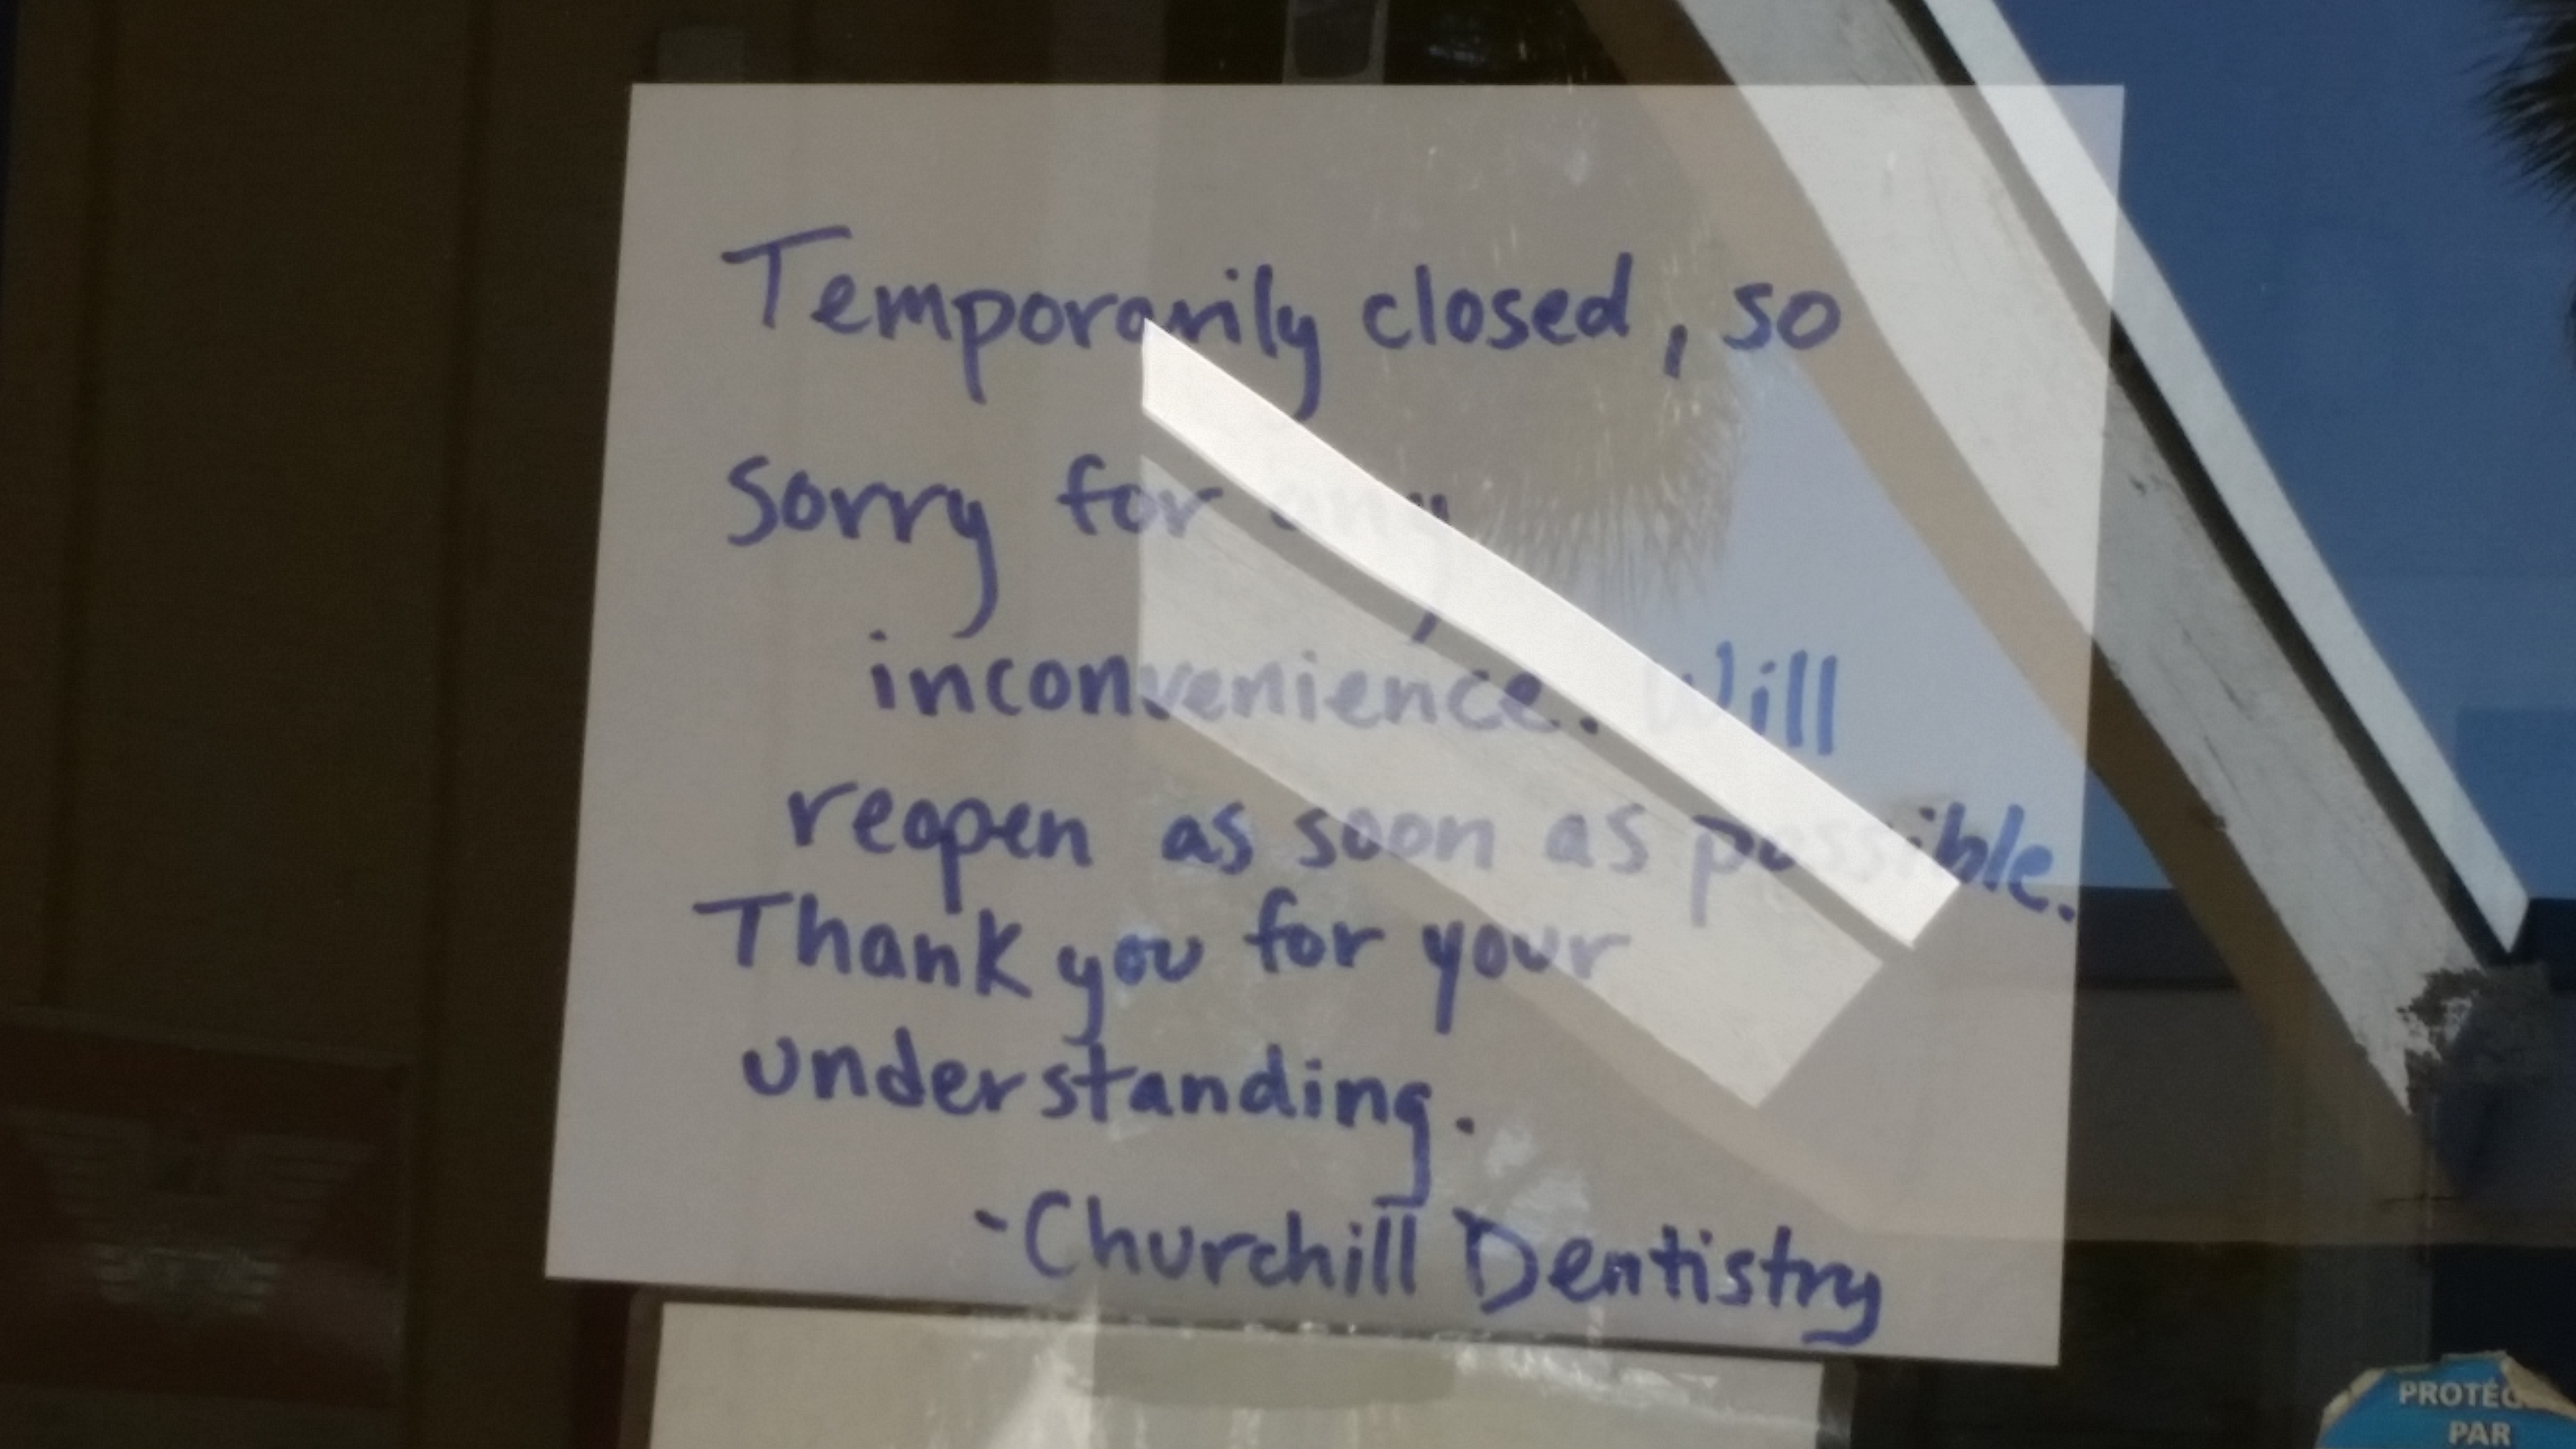 churchill dentistry3